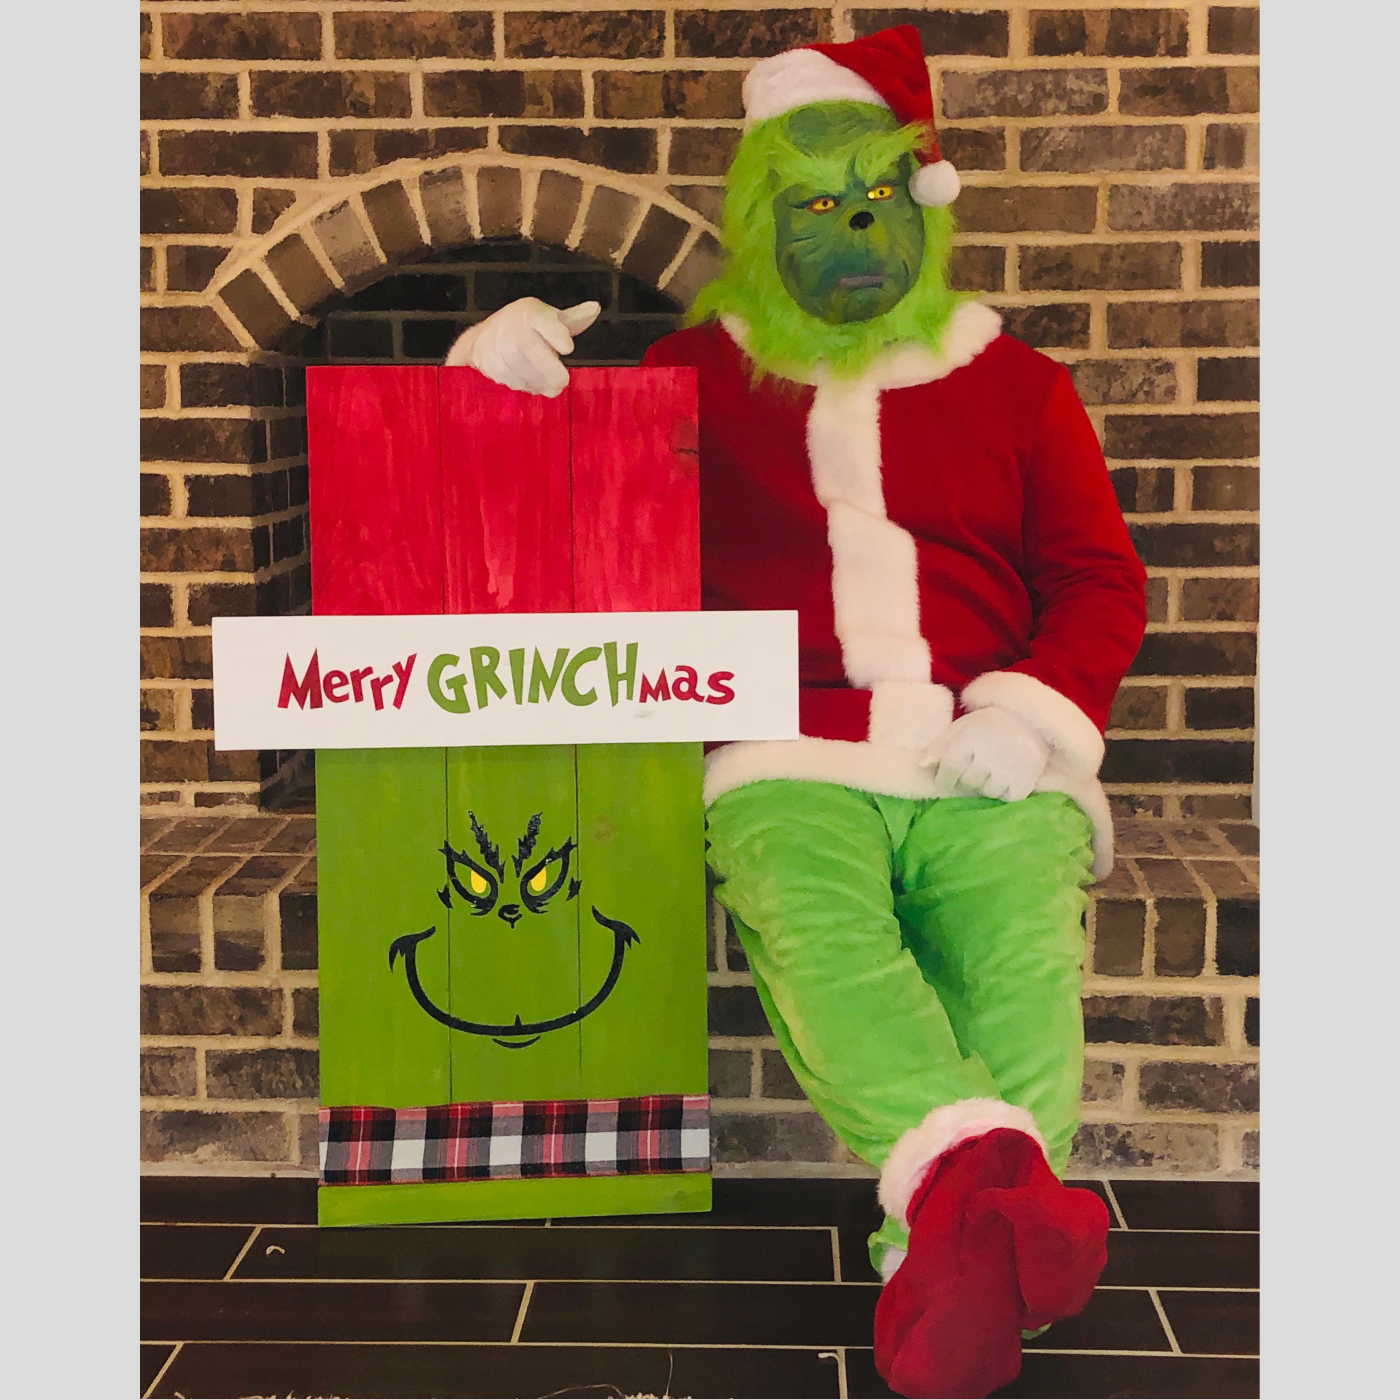 Merry GRINCHmas DIY wood Sign Bethlehem PA